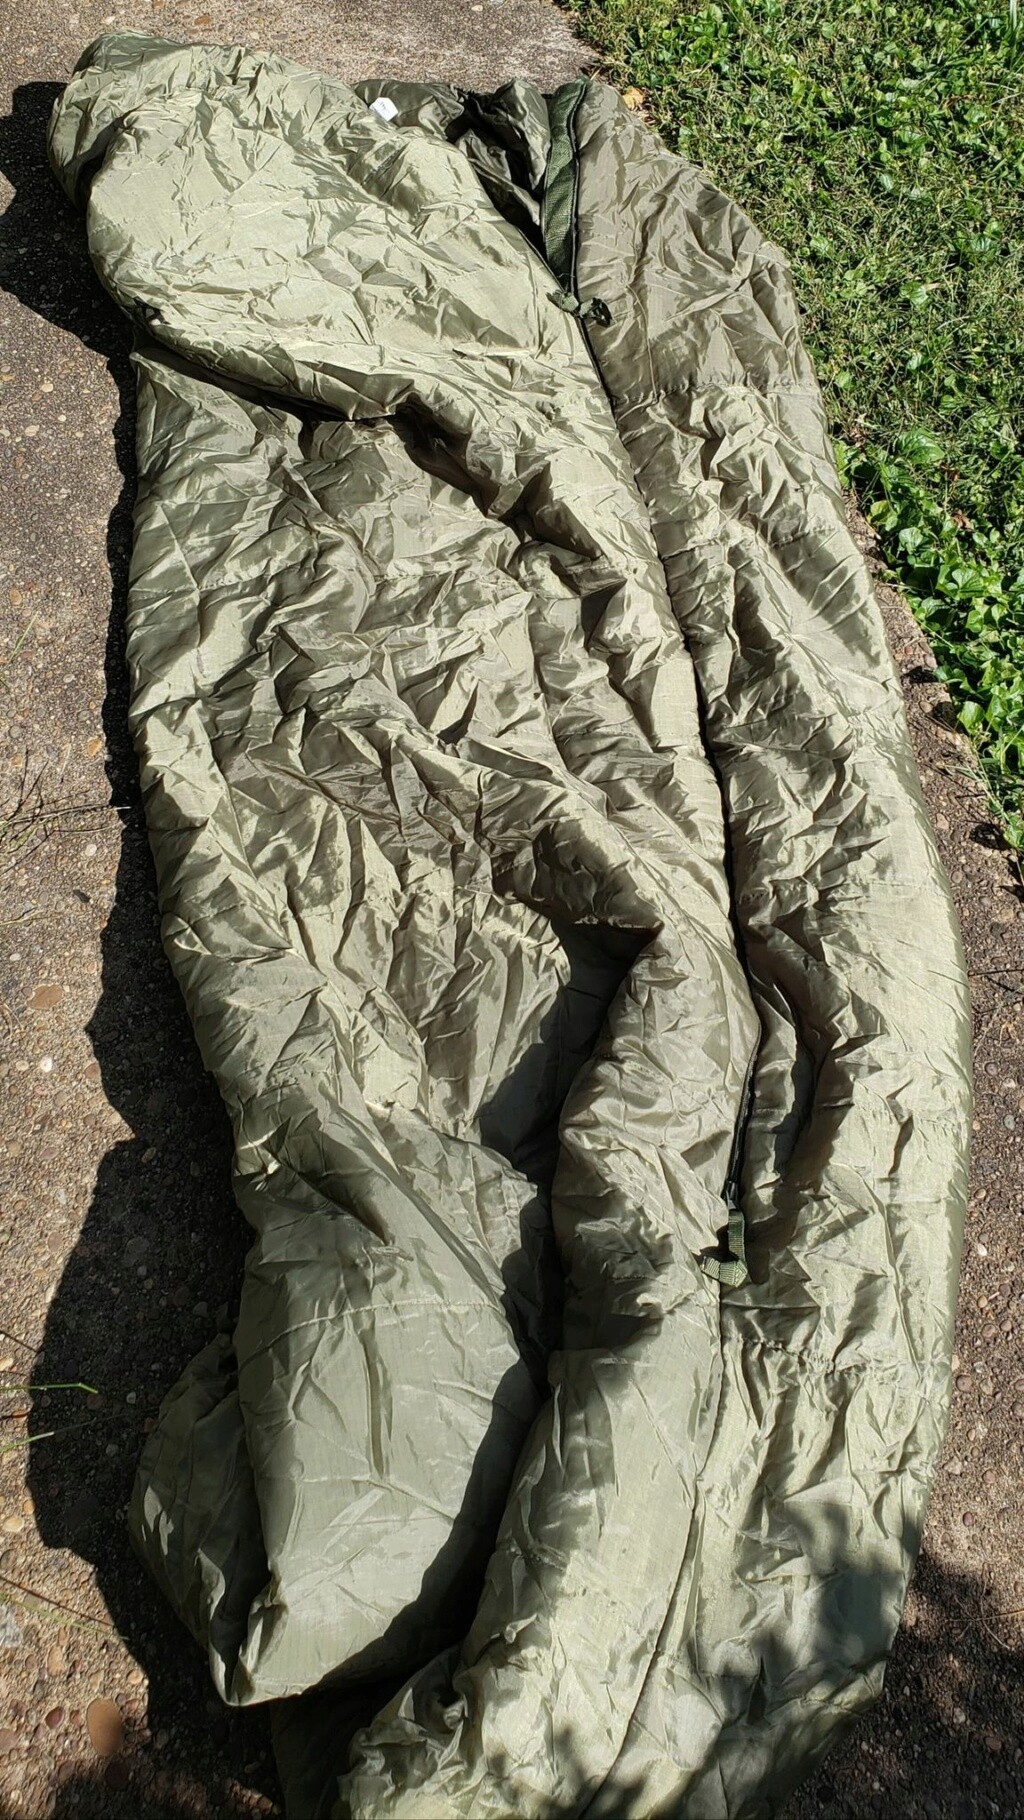 Afghan National Army Sleeping Bag and Stuff Sack Sleepi10